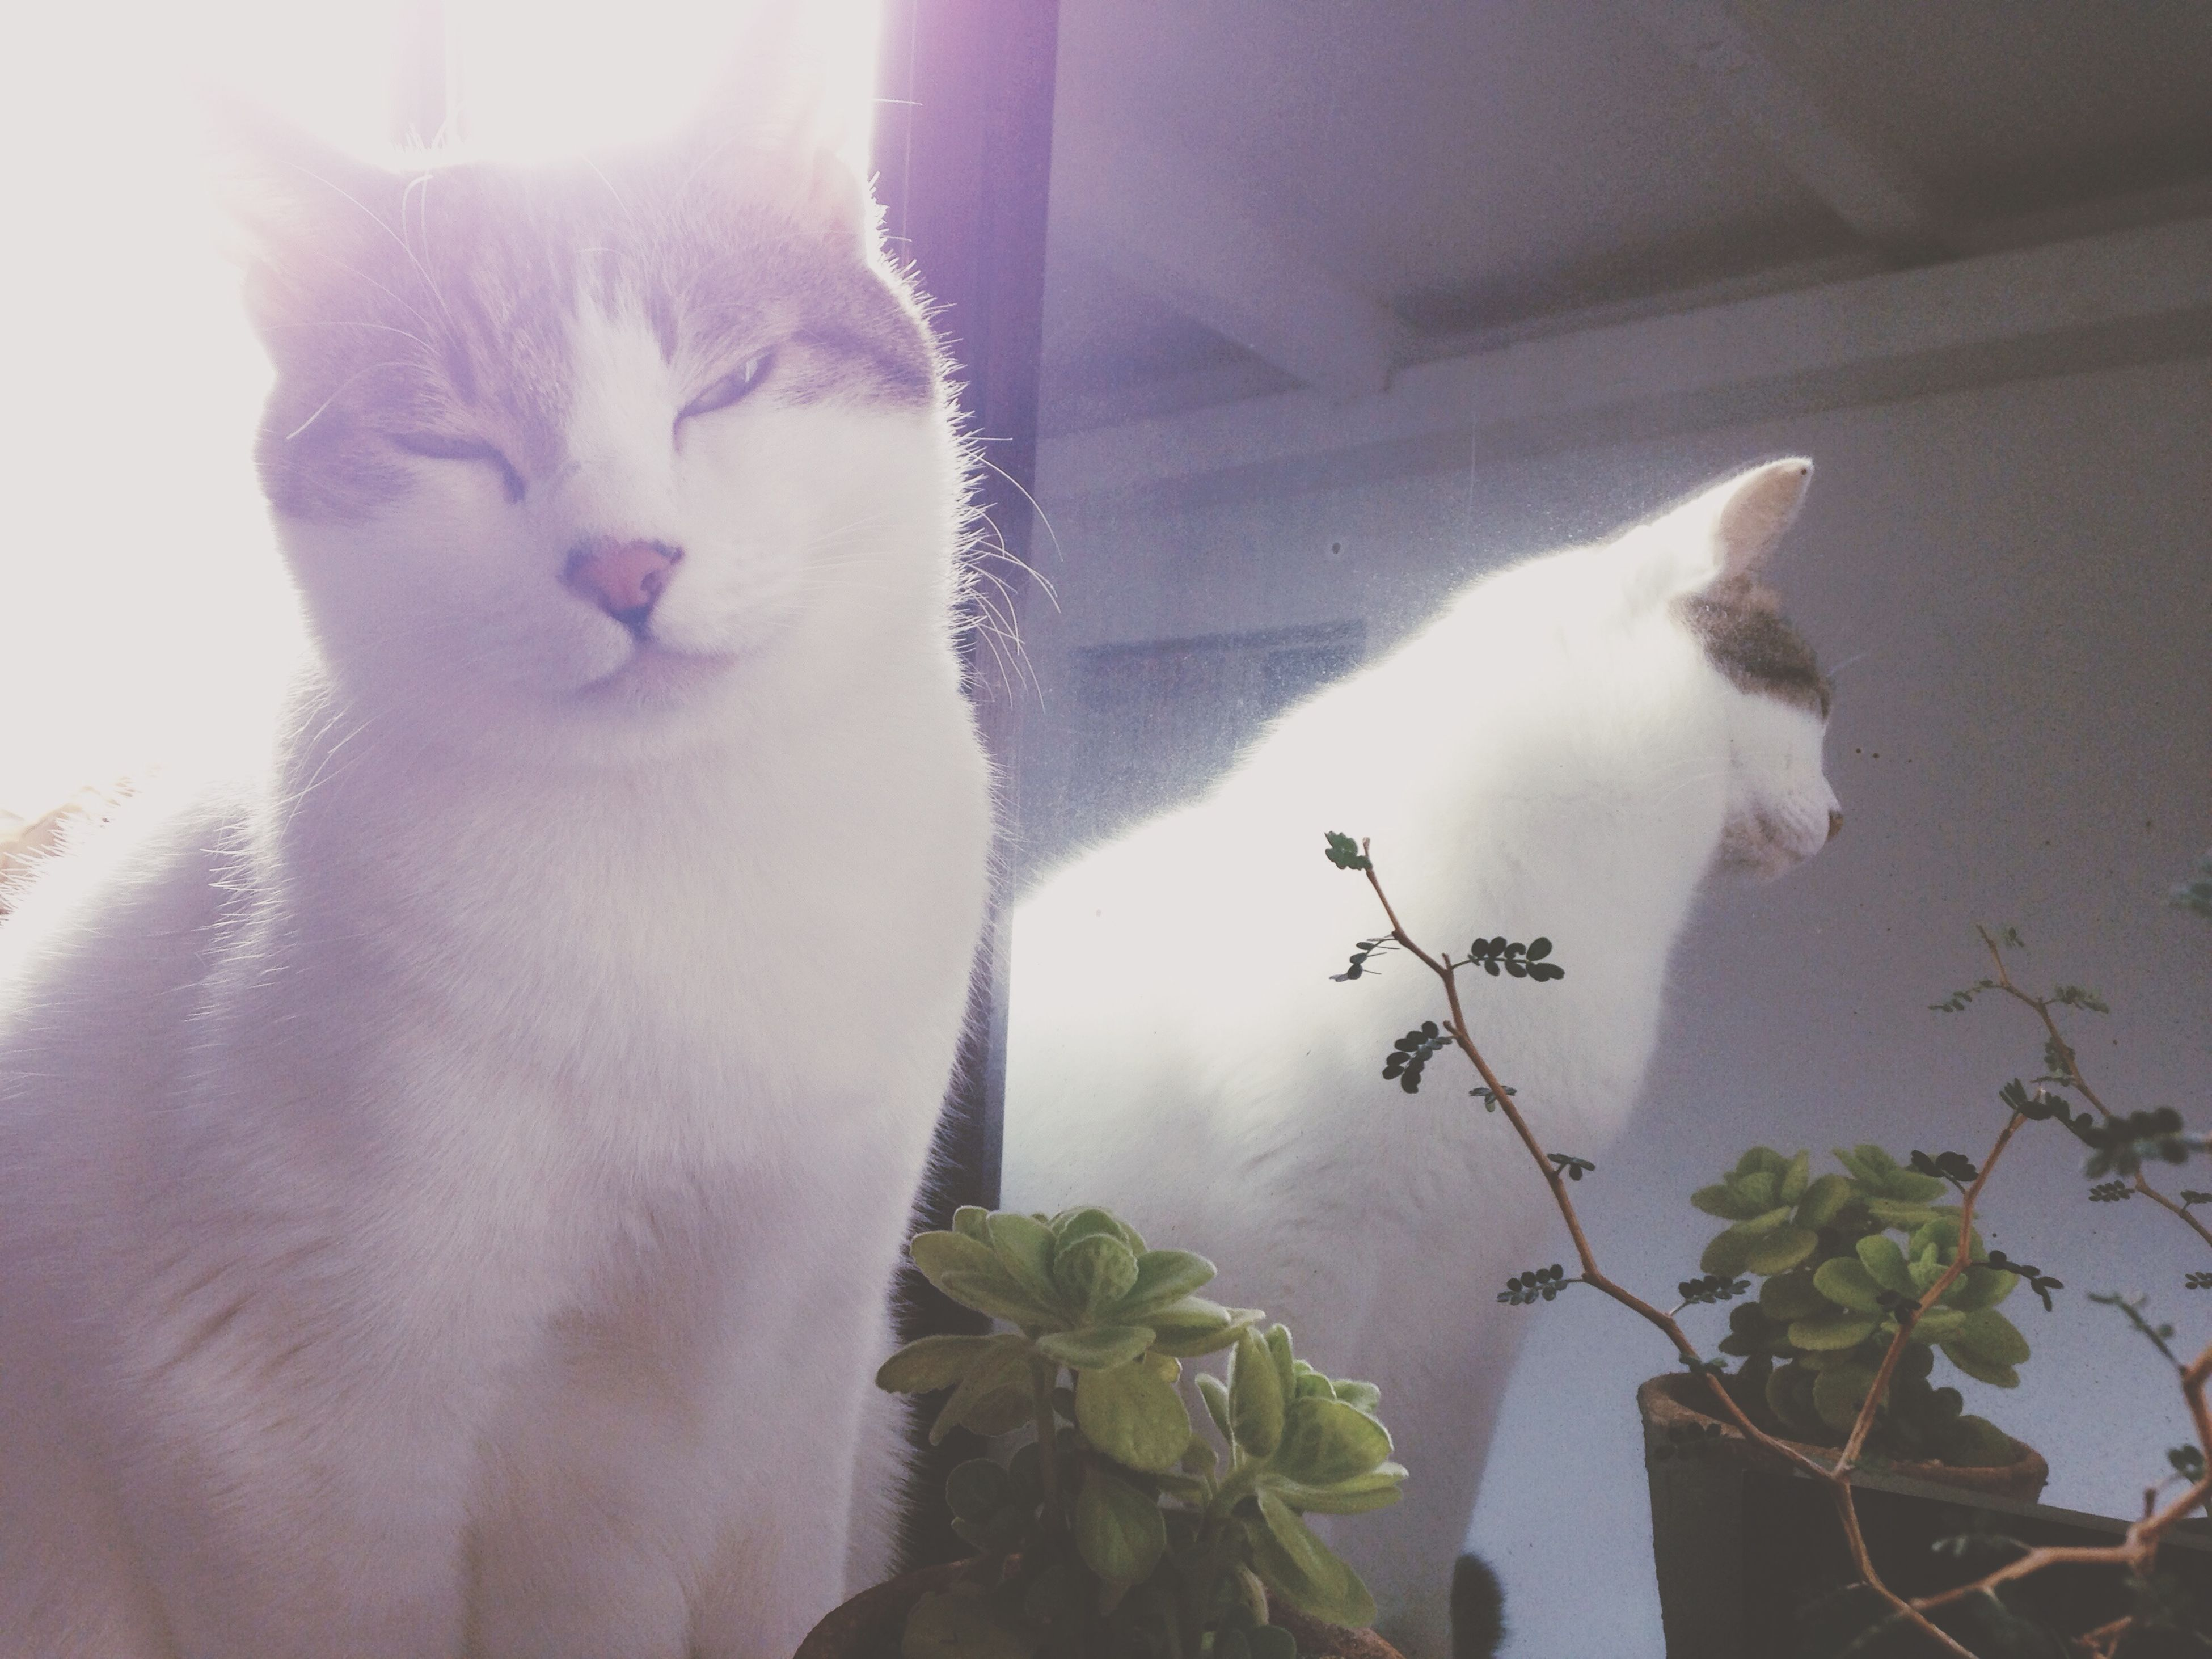 domestic animals, pets, domestic cat, one animal, animal themes, mammal, cat, indoors, feline, home interior, close-up, relaxation, plant, flower, eyes closed, whisker, looking away, portrait, home, nature